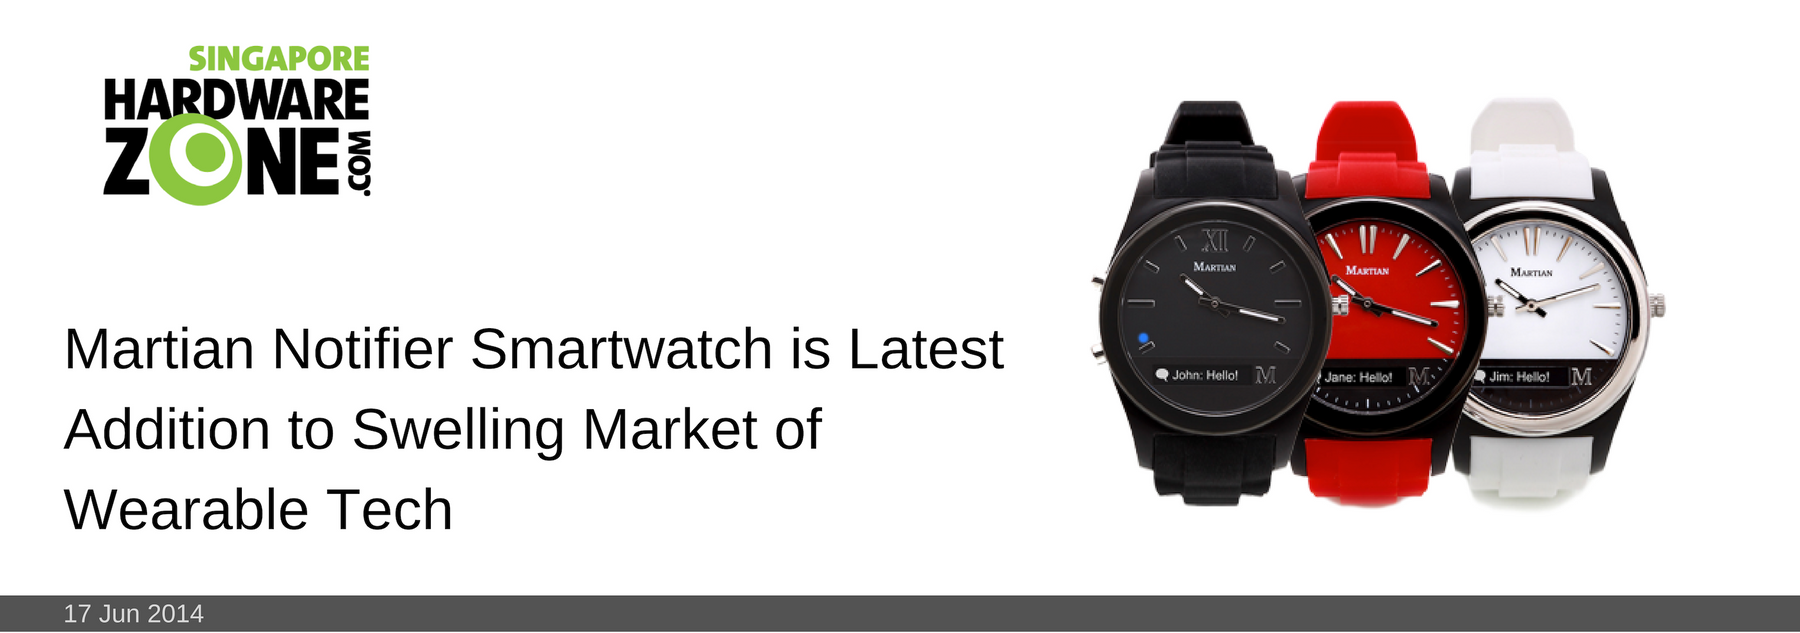 16 JUN 2014: Martian Notifier is Latest Addition to Swelling Market of Wearable Tech